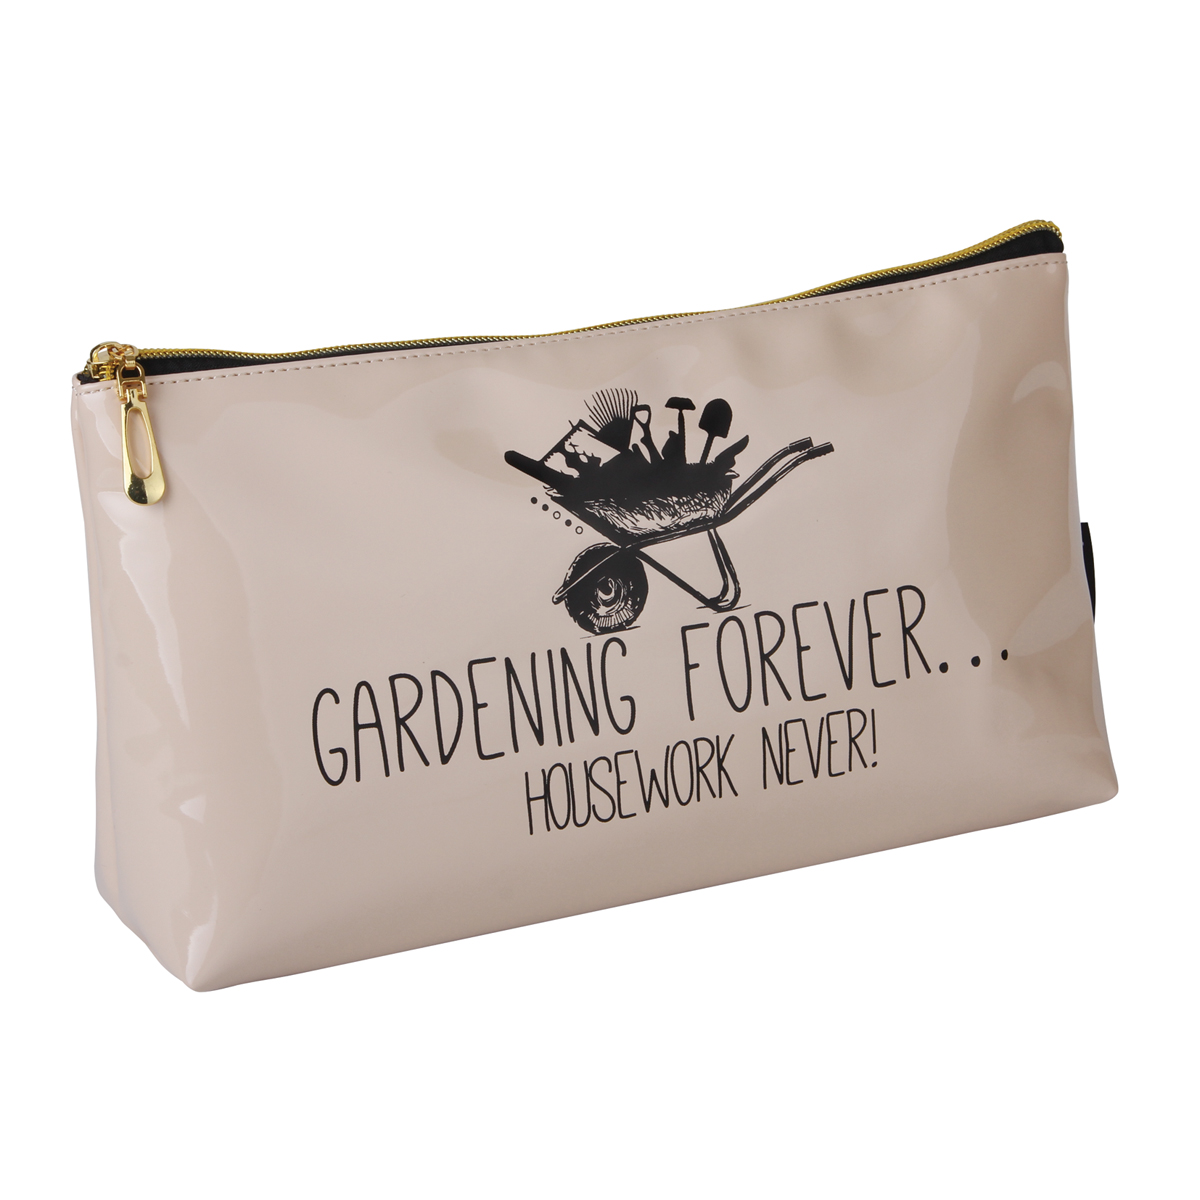 B2064 1 - 'Gardening Forever' Cosmetic/Toiletry Bags - B2064